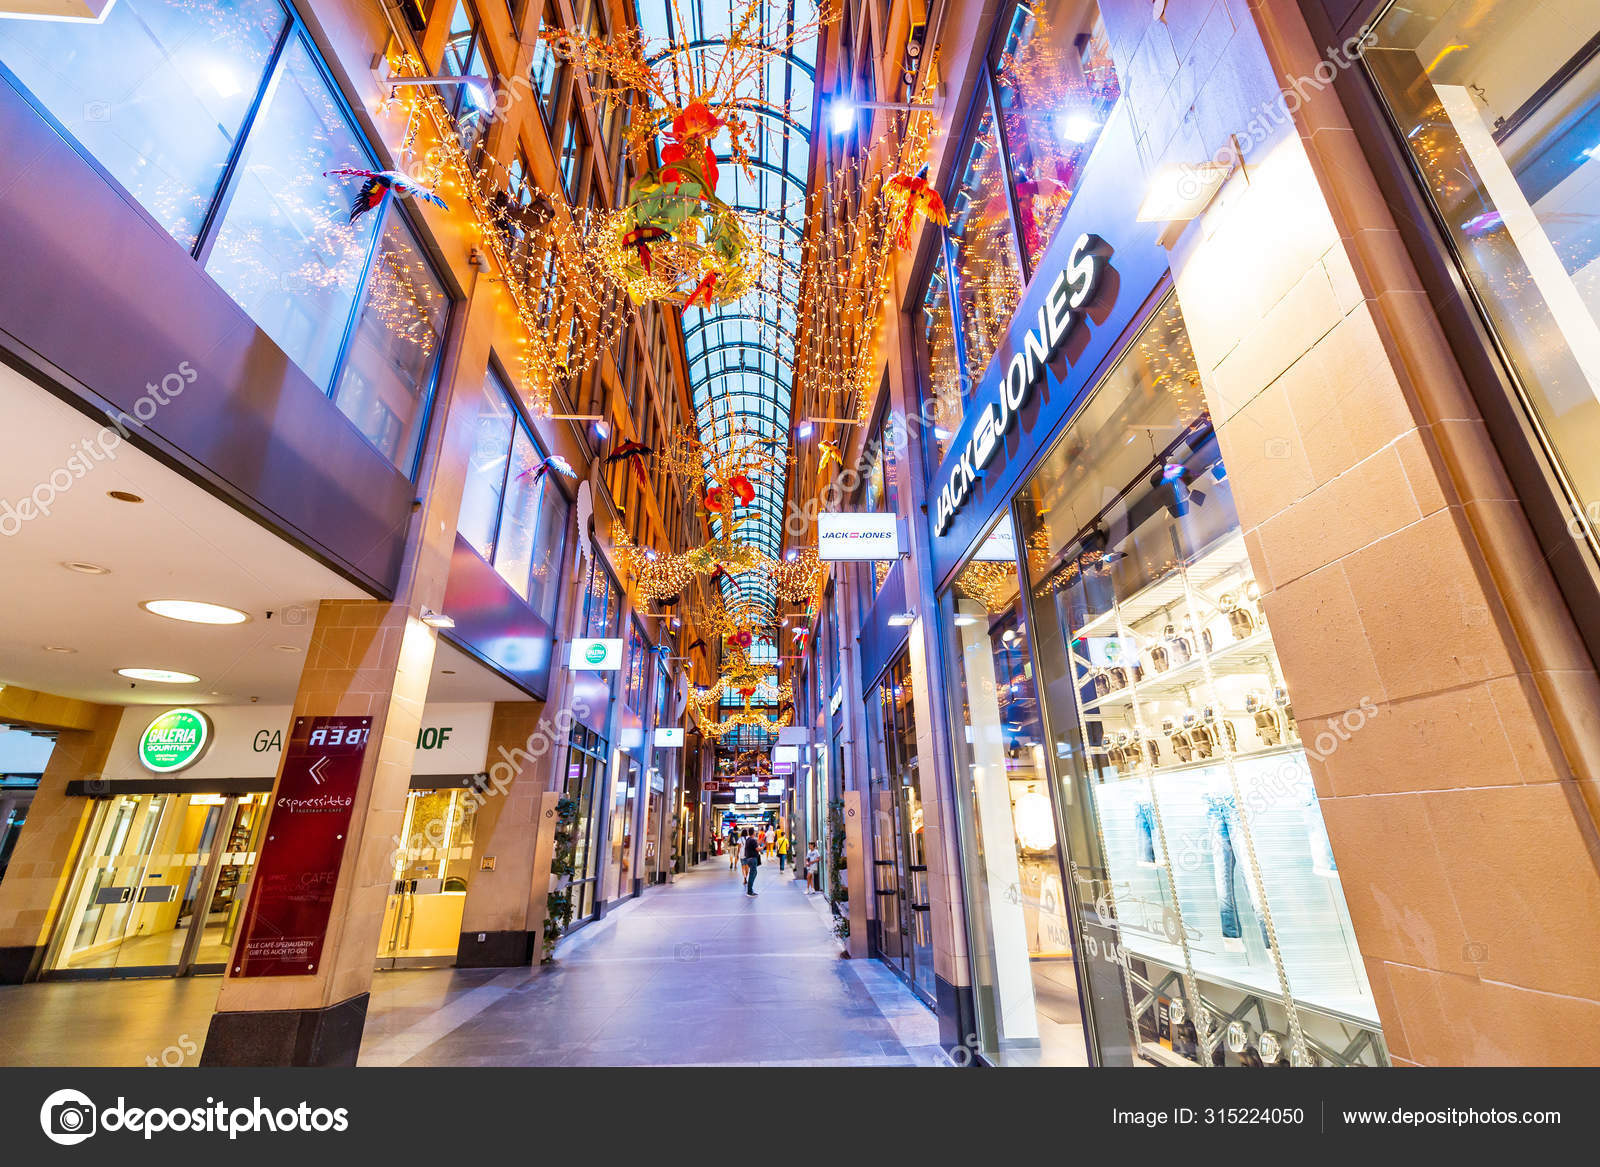 07 August 2019 Munchen Germany Kaufingertor Passage Shopping Mall At Evening Stock Editorial Photo Frantic00 315224050